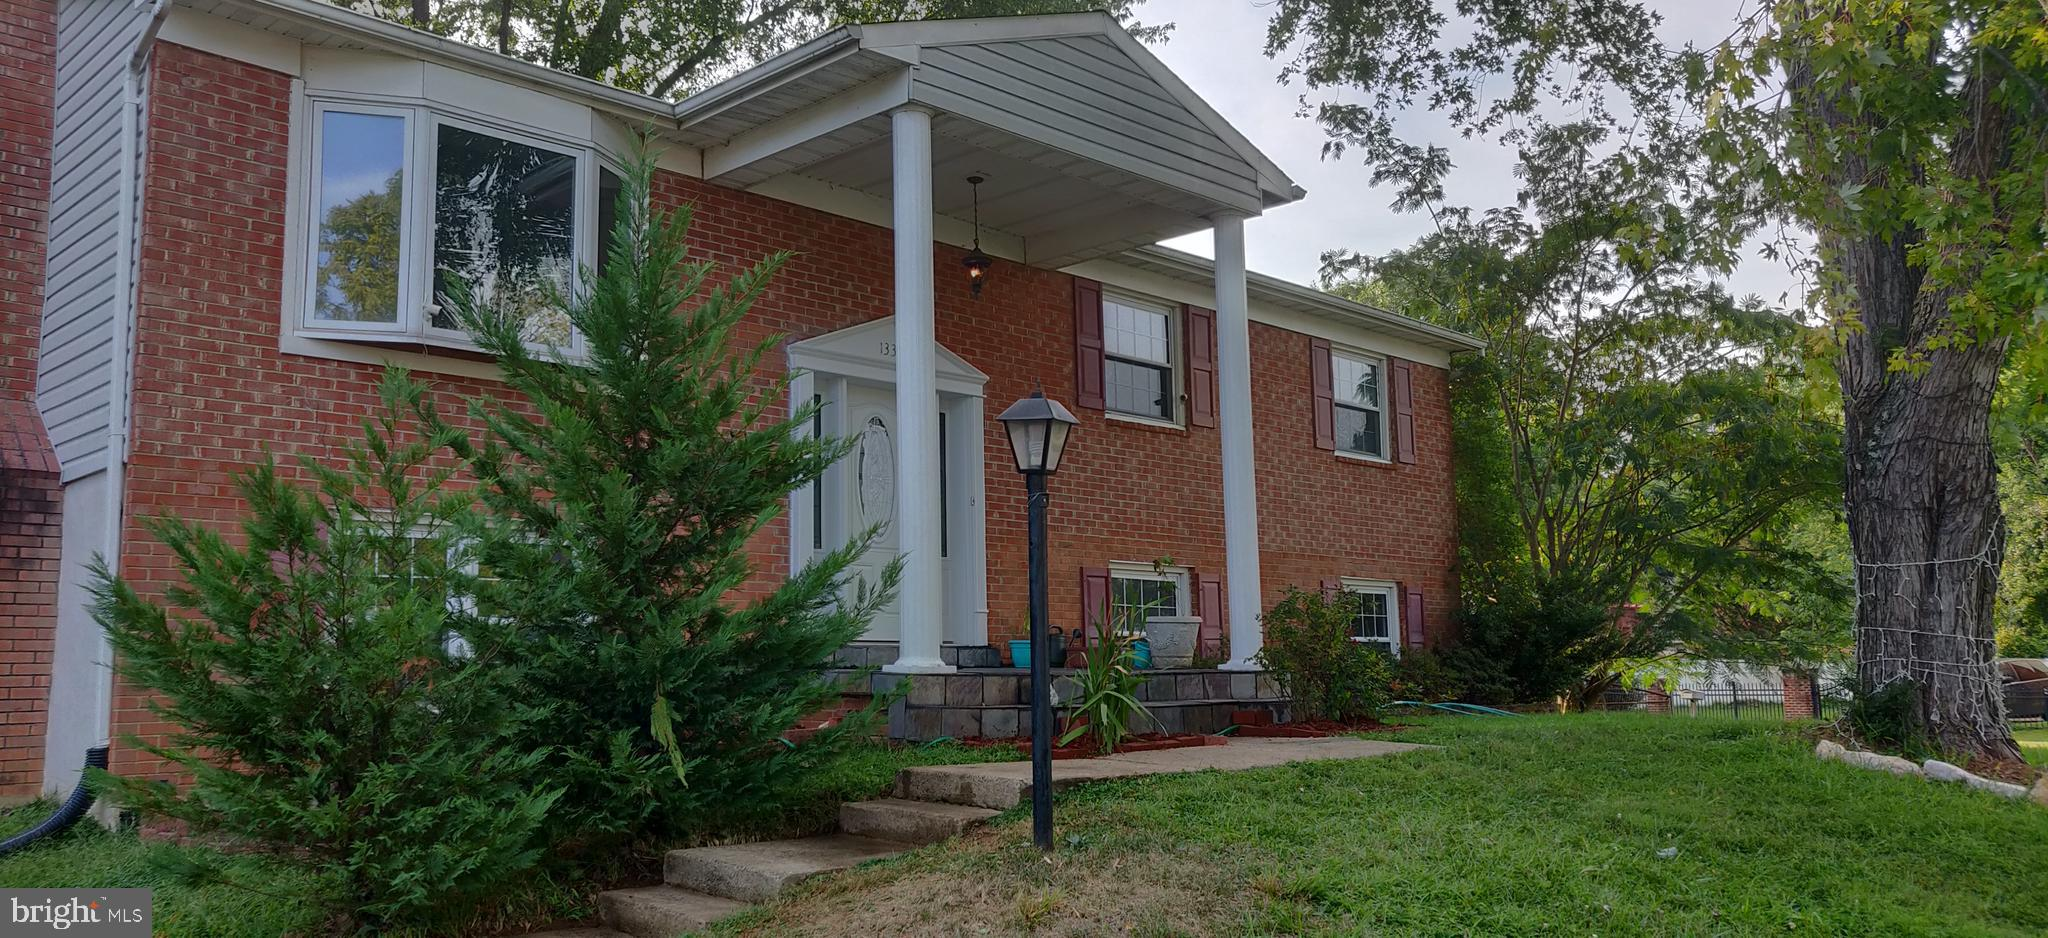 Nicely updated bright single-family home, corner lot with large flat backyard. Large Master Bedroom